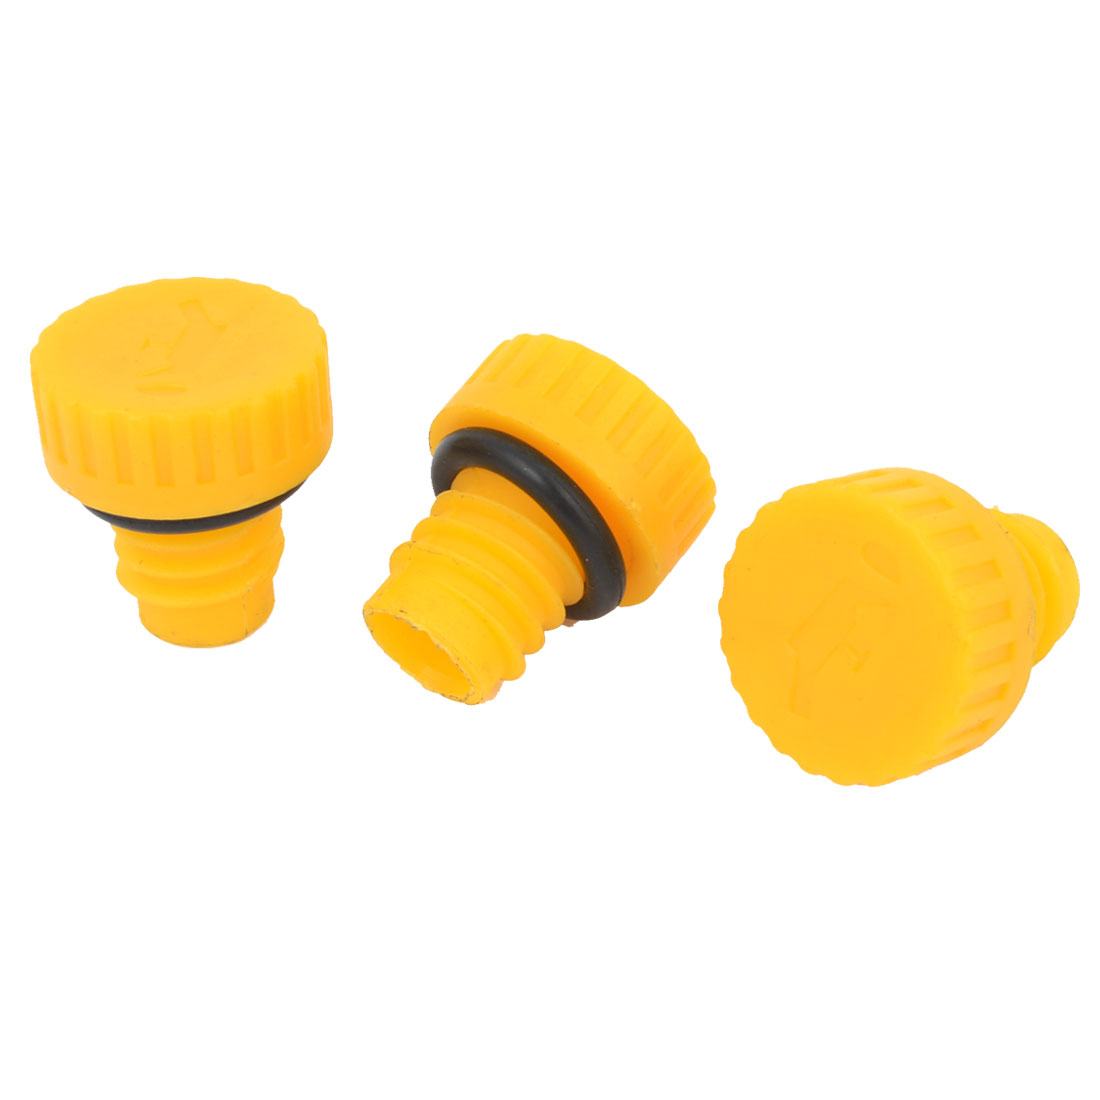 Yellow 15mm Thread Plastic Oil Connector for Air Compressor 3 Pcs